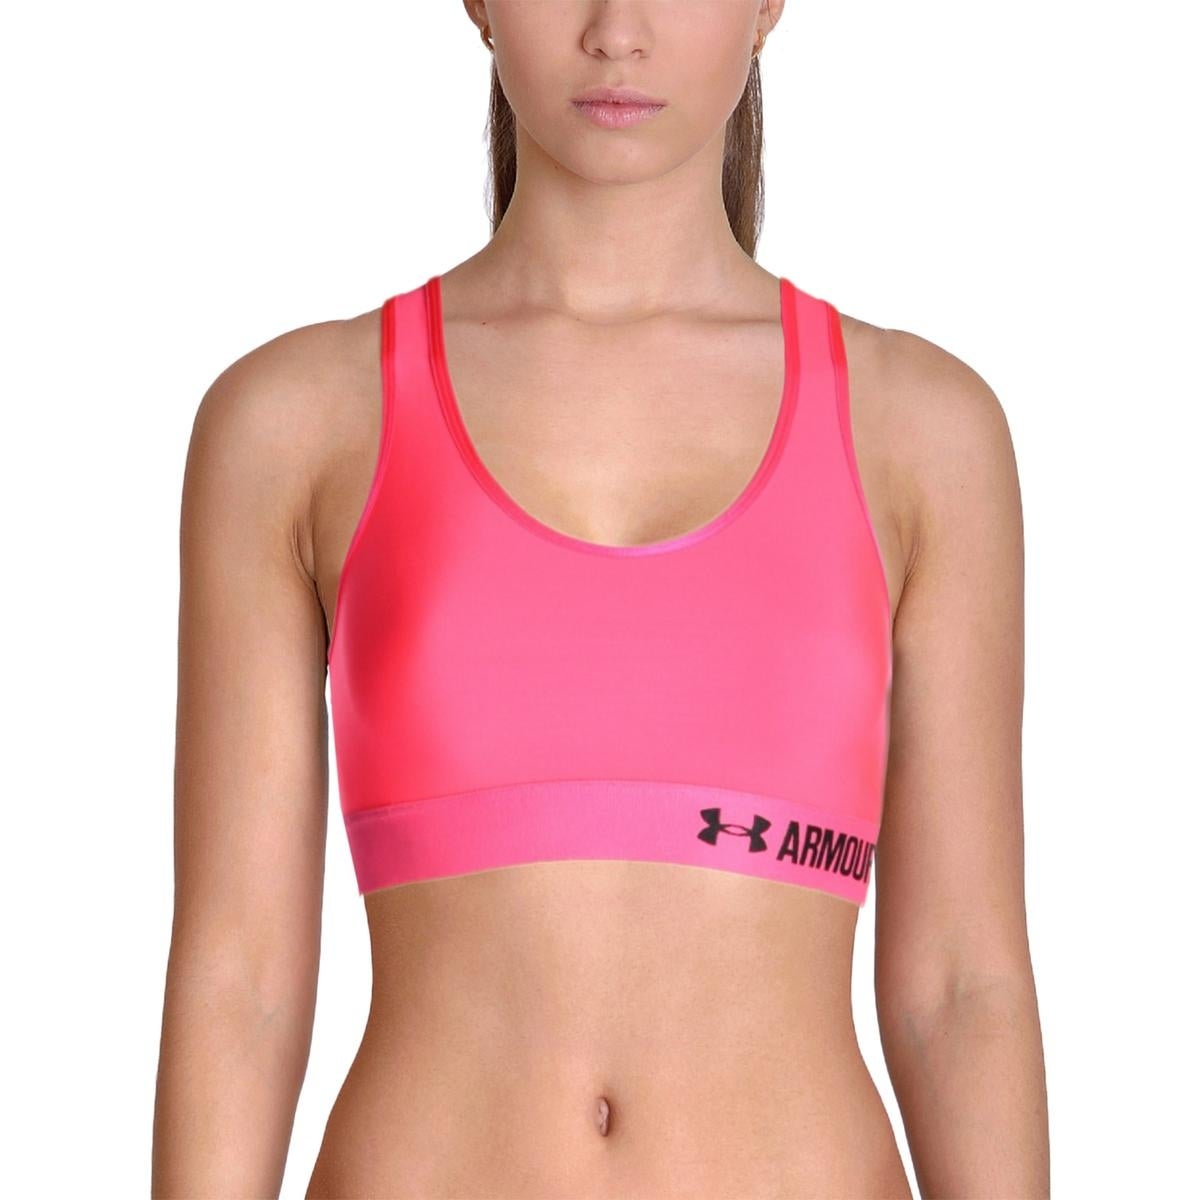 829c05fbb Shop Under Armour Womens Sports Bra Racerback Fitness - Free Shipping On Orders  Over  45 - Overstock.com - 14282848